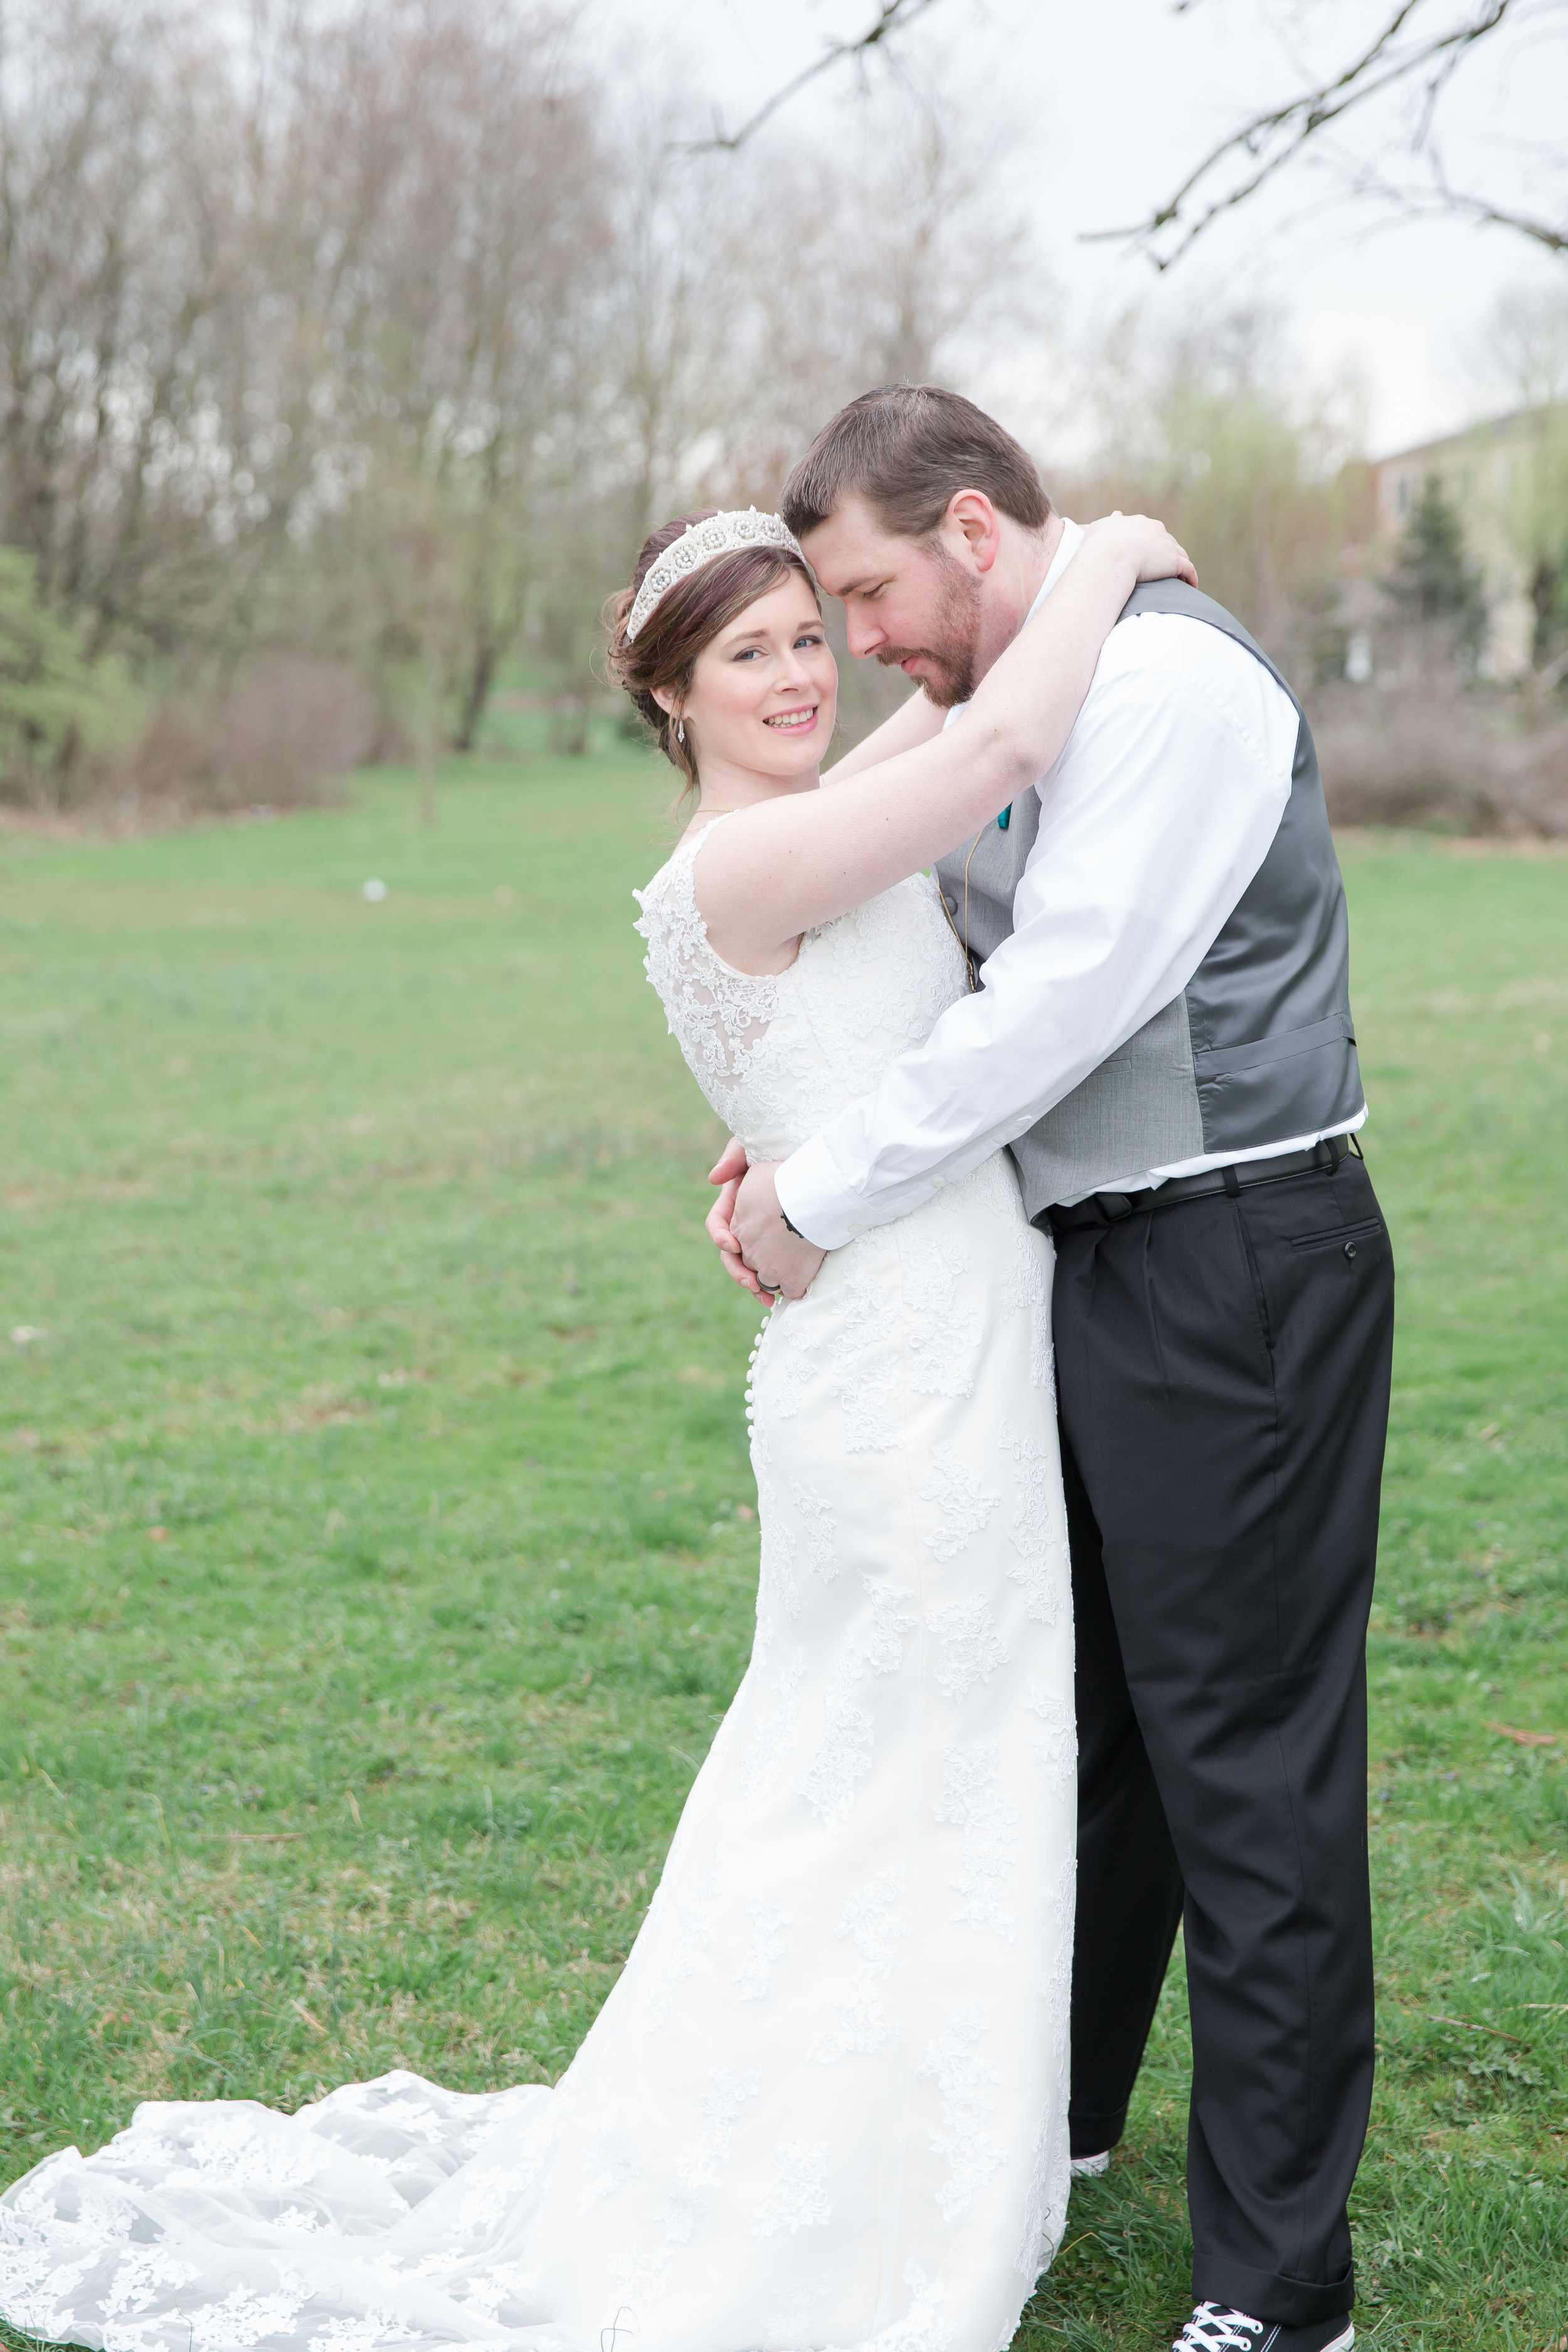 Kaitrin and Tim were such a sweet couple!